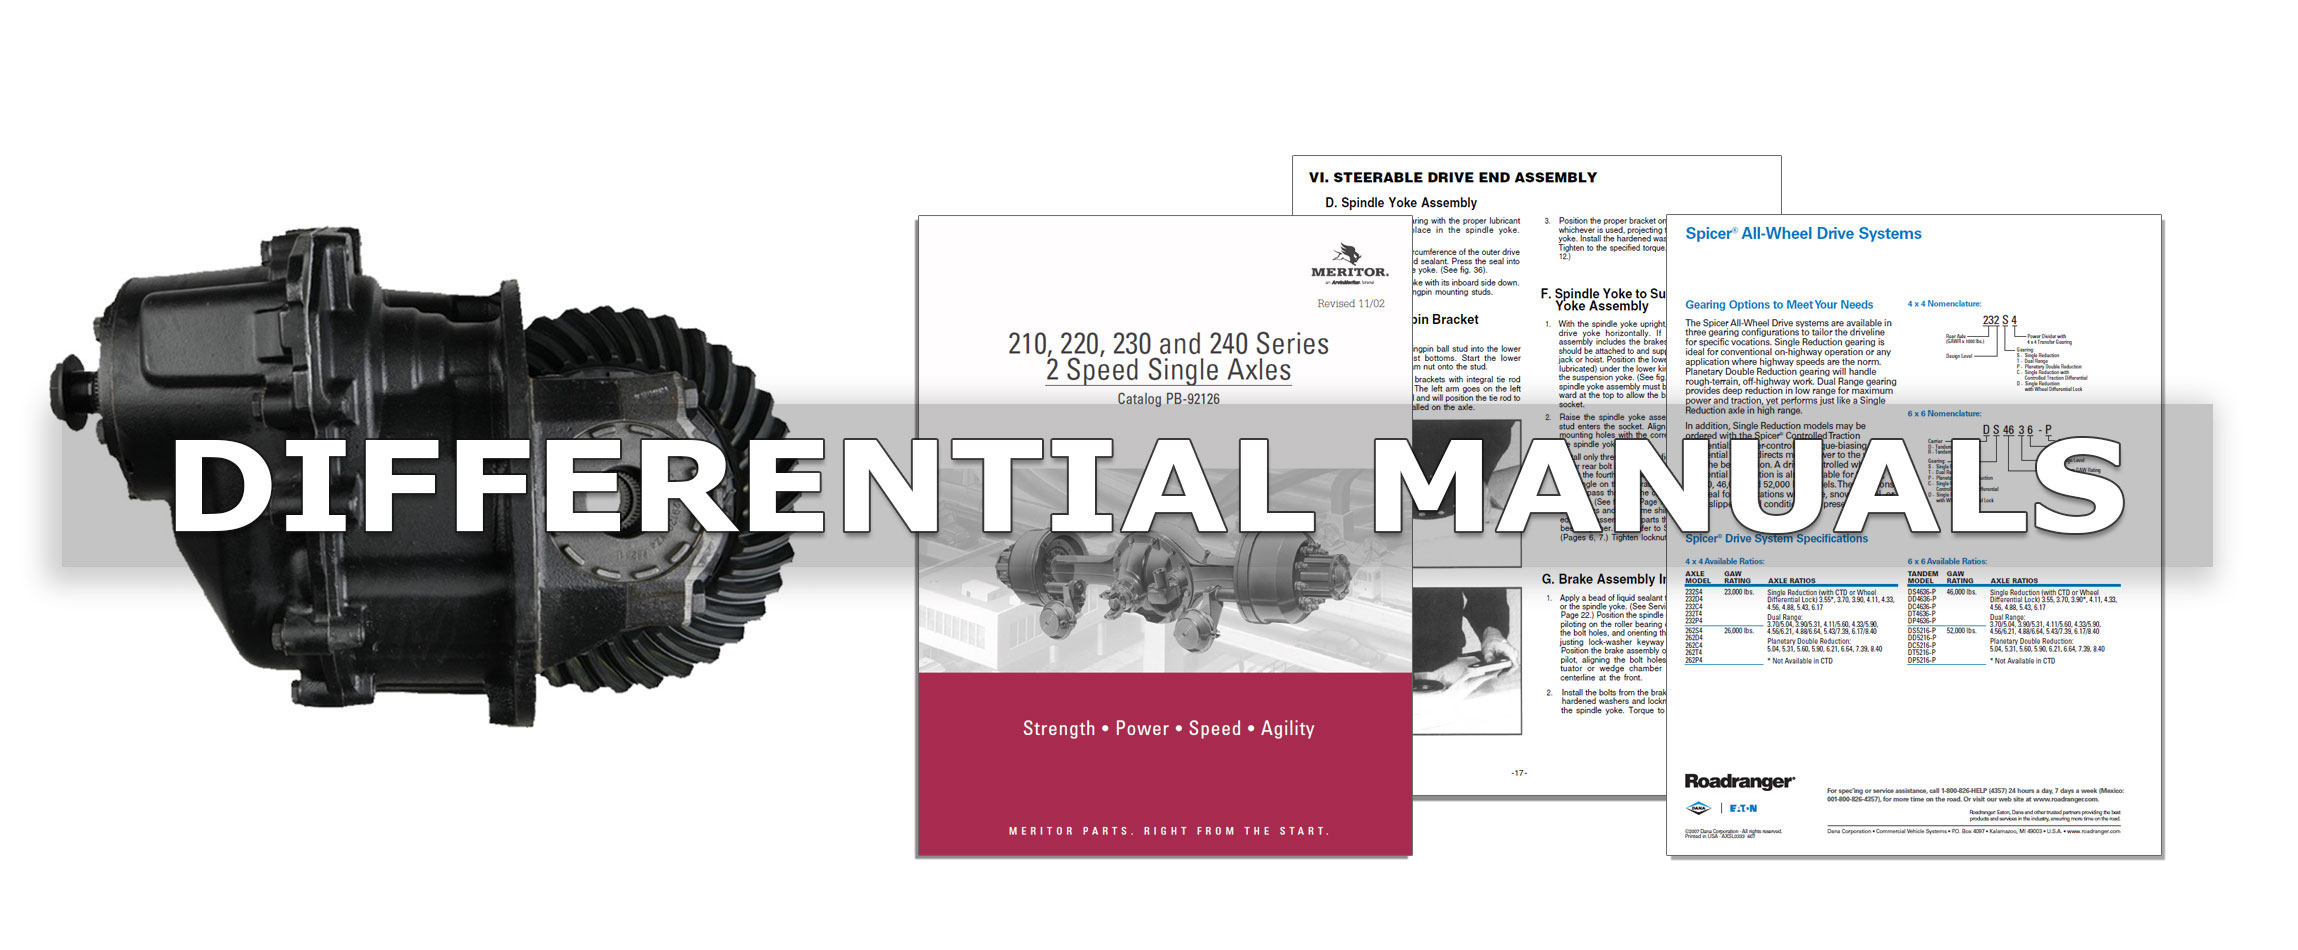 differential manuals